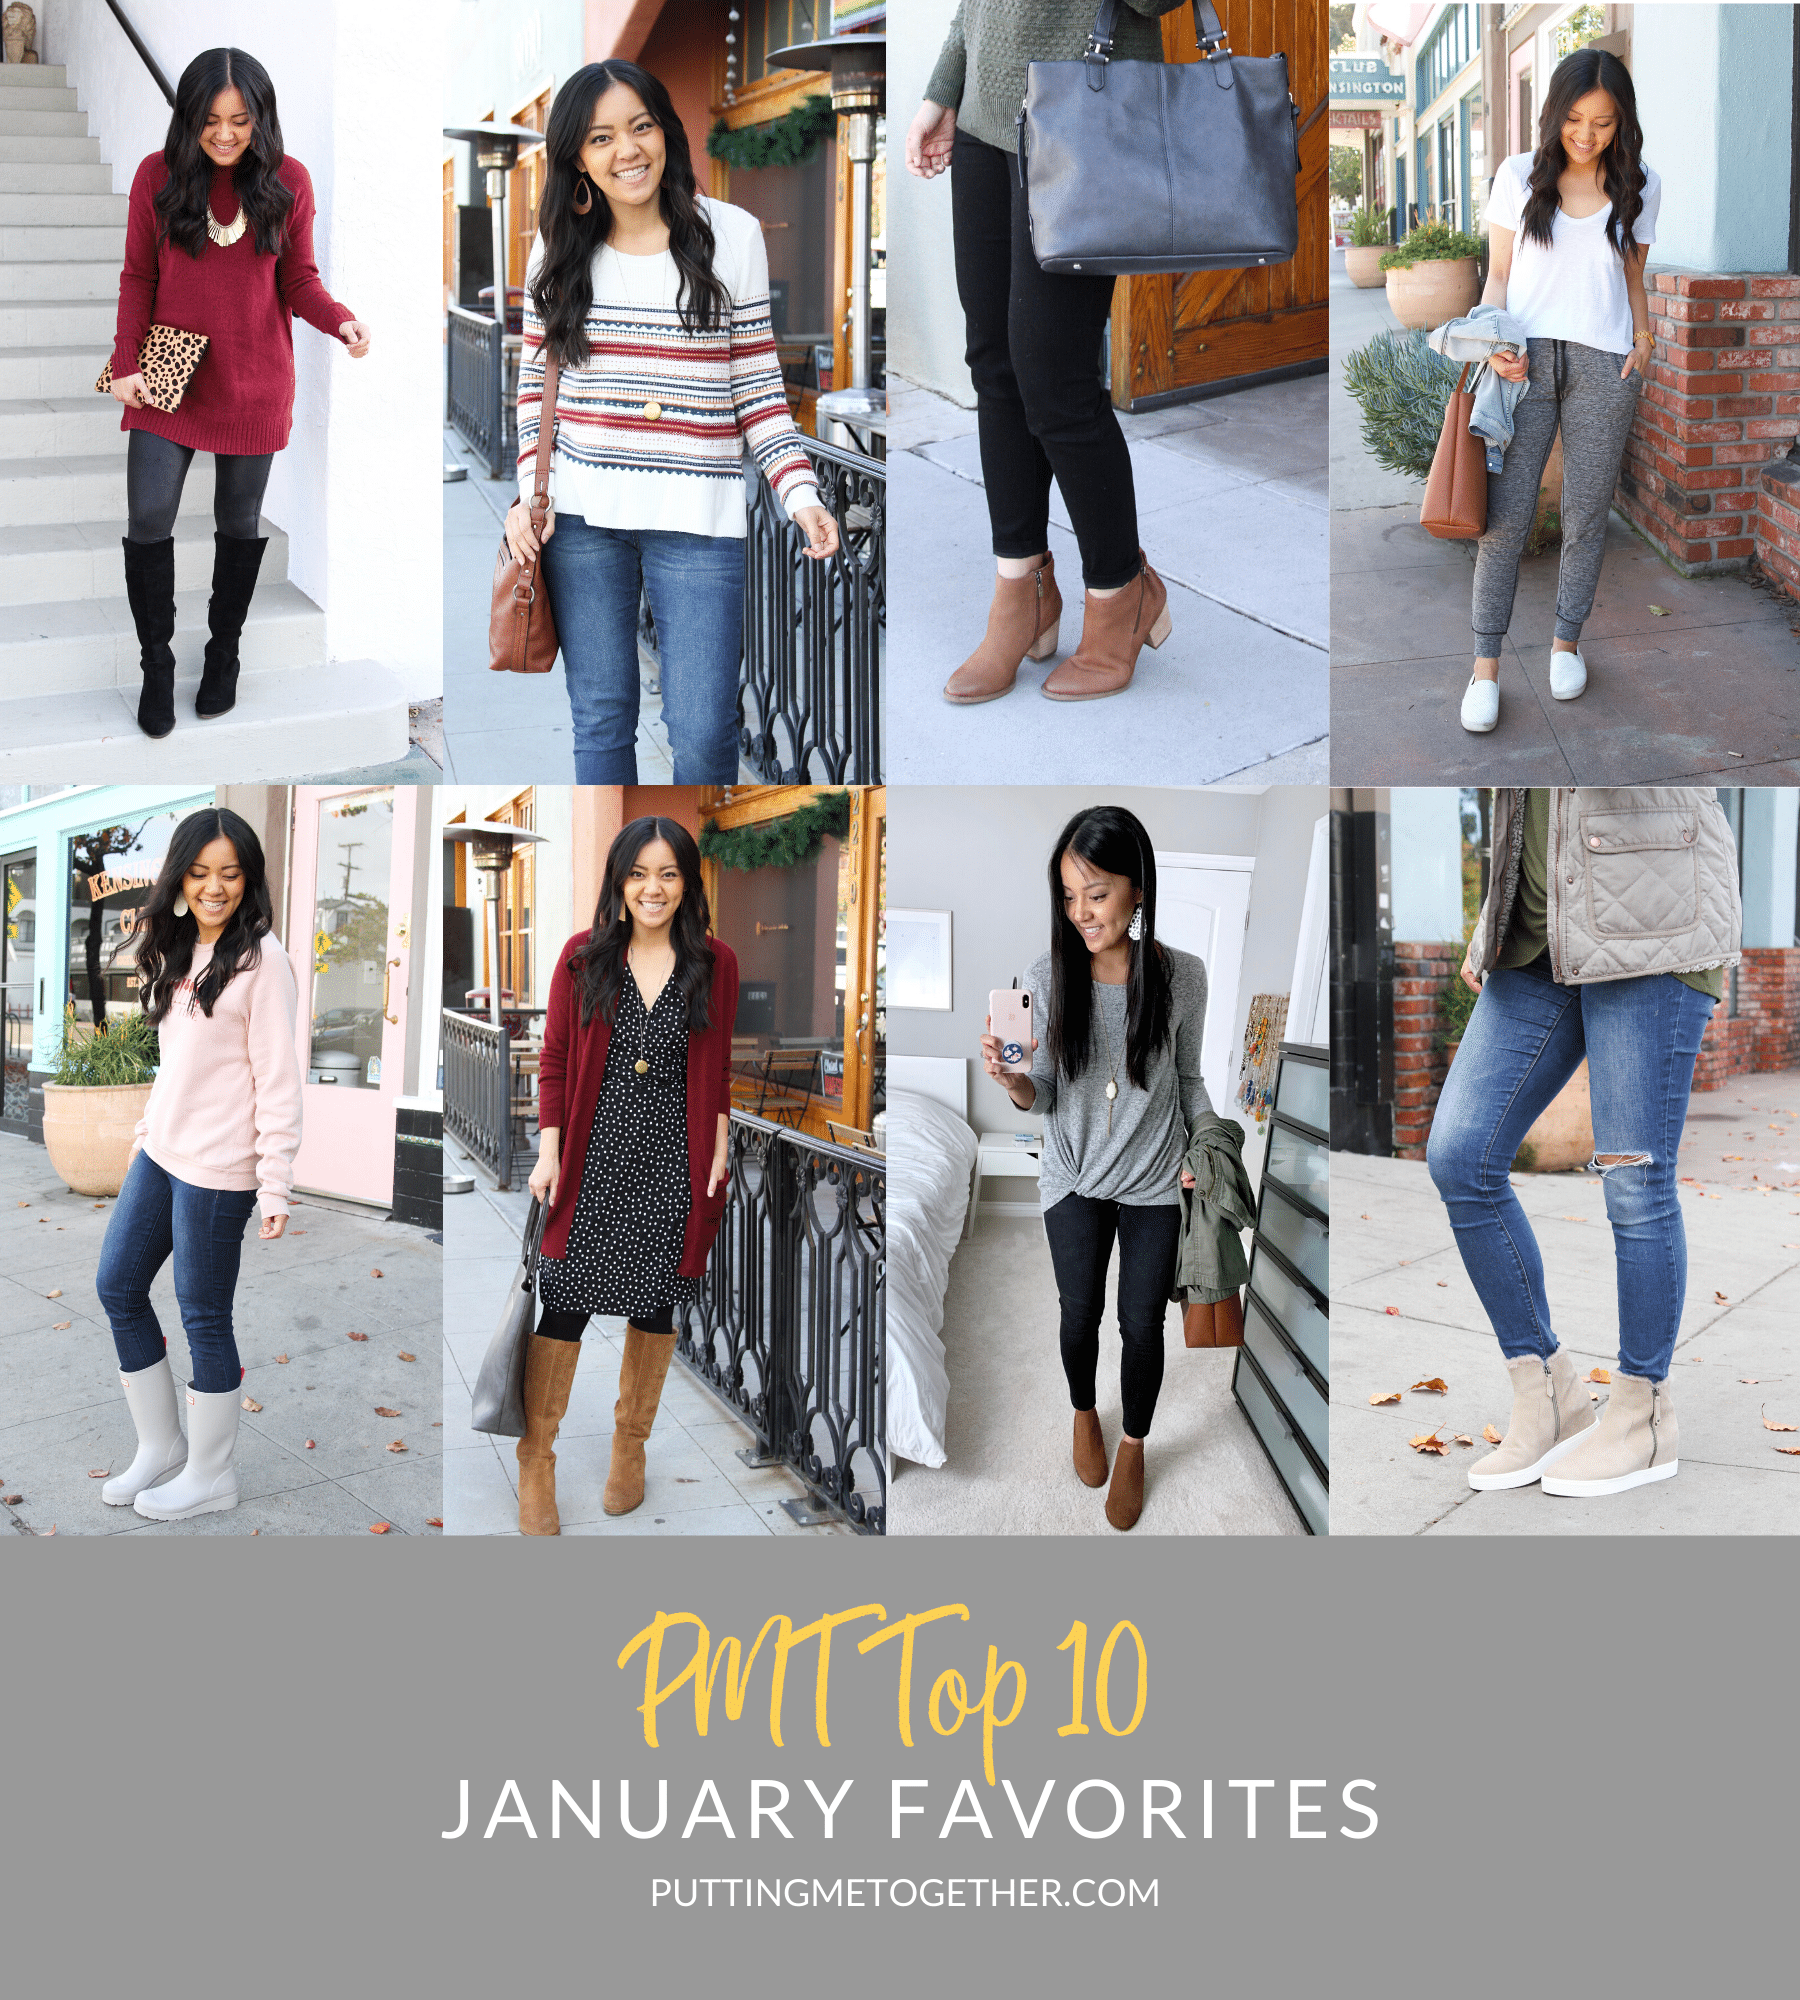 Top January Favorites and Best Sellers